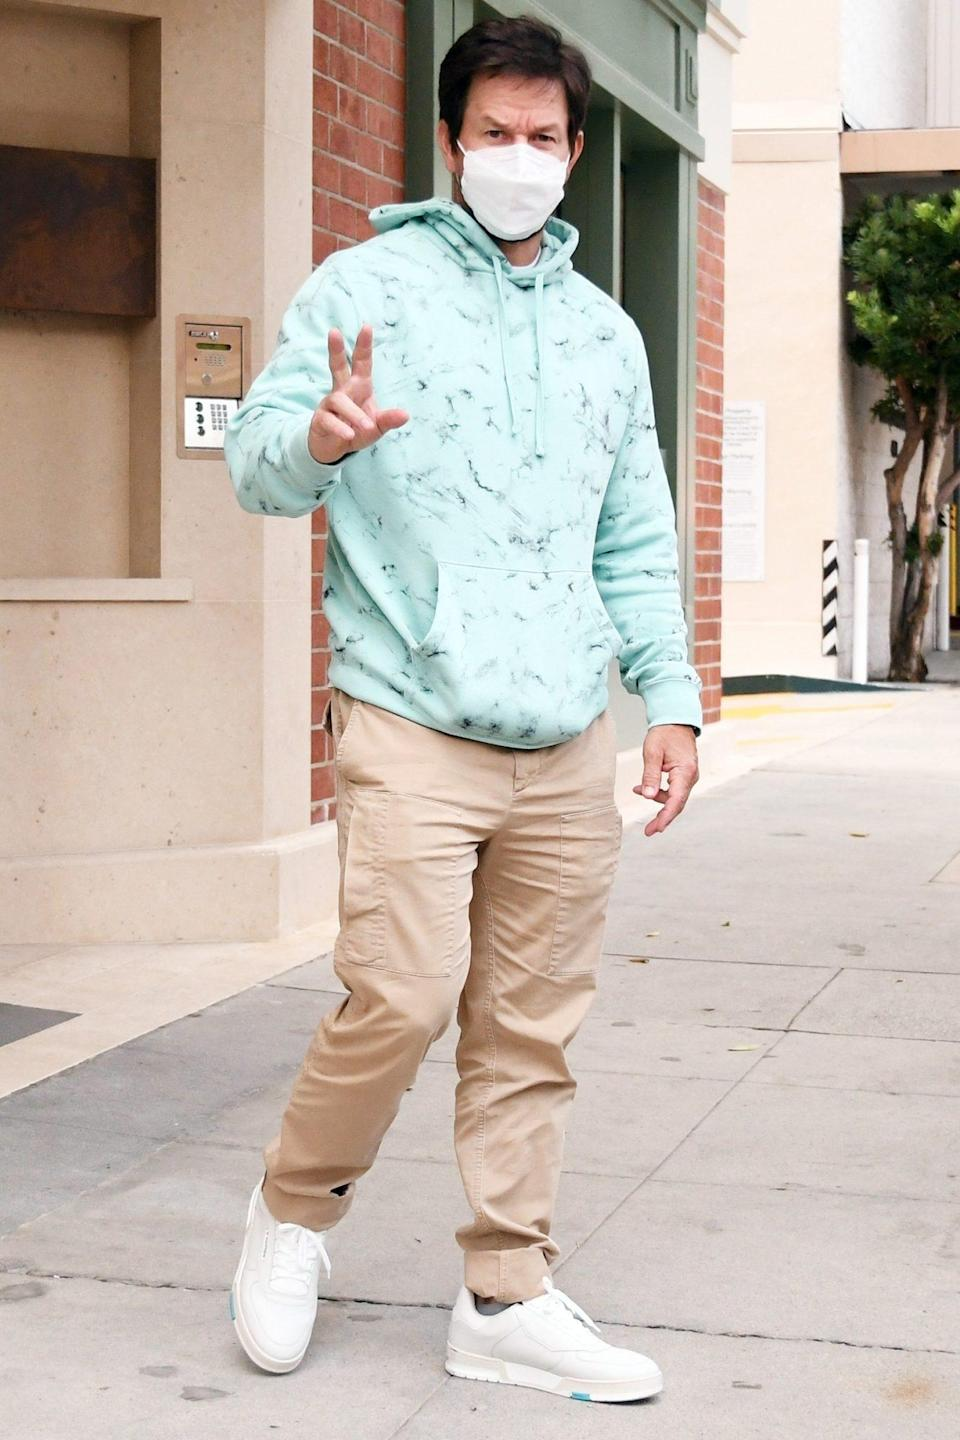 <p>Mark Wahlberg flashes a peace sign while seen leaving a doctor's office in Beverly Hills on Wednesday.</p>